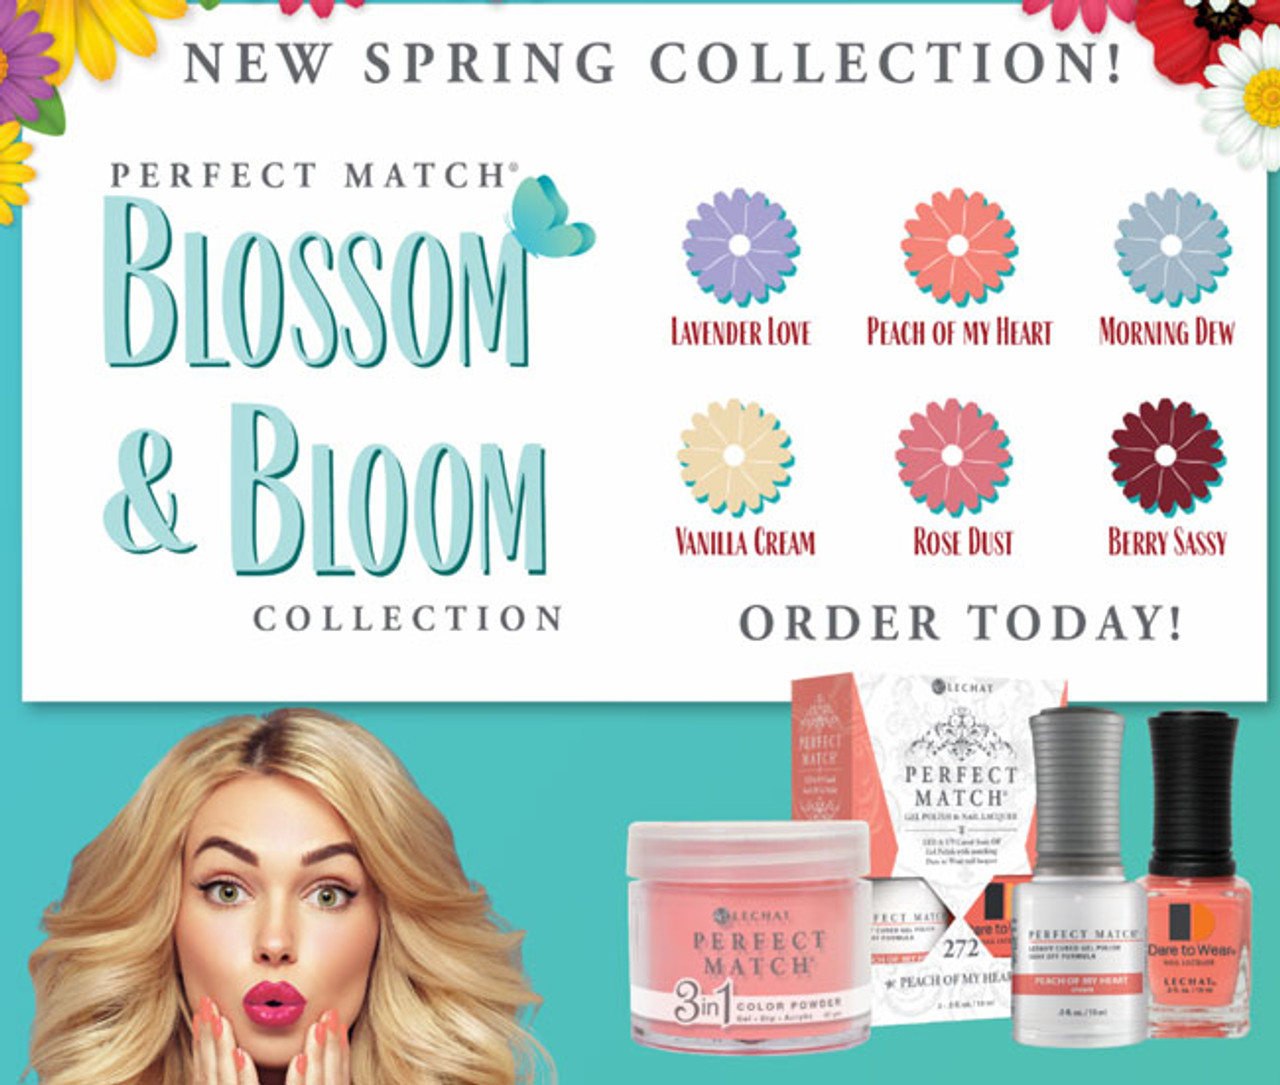 LeChat Perfect Match Blossom & Bloom Collection - Open Stock